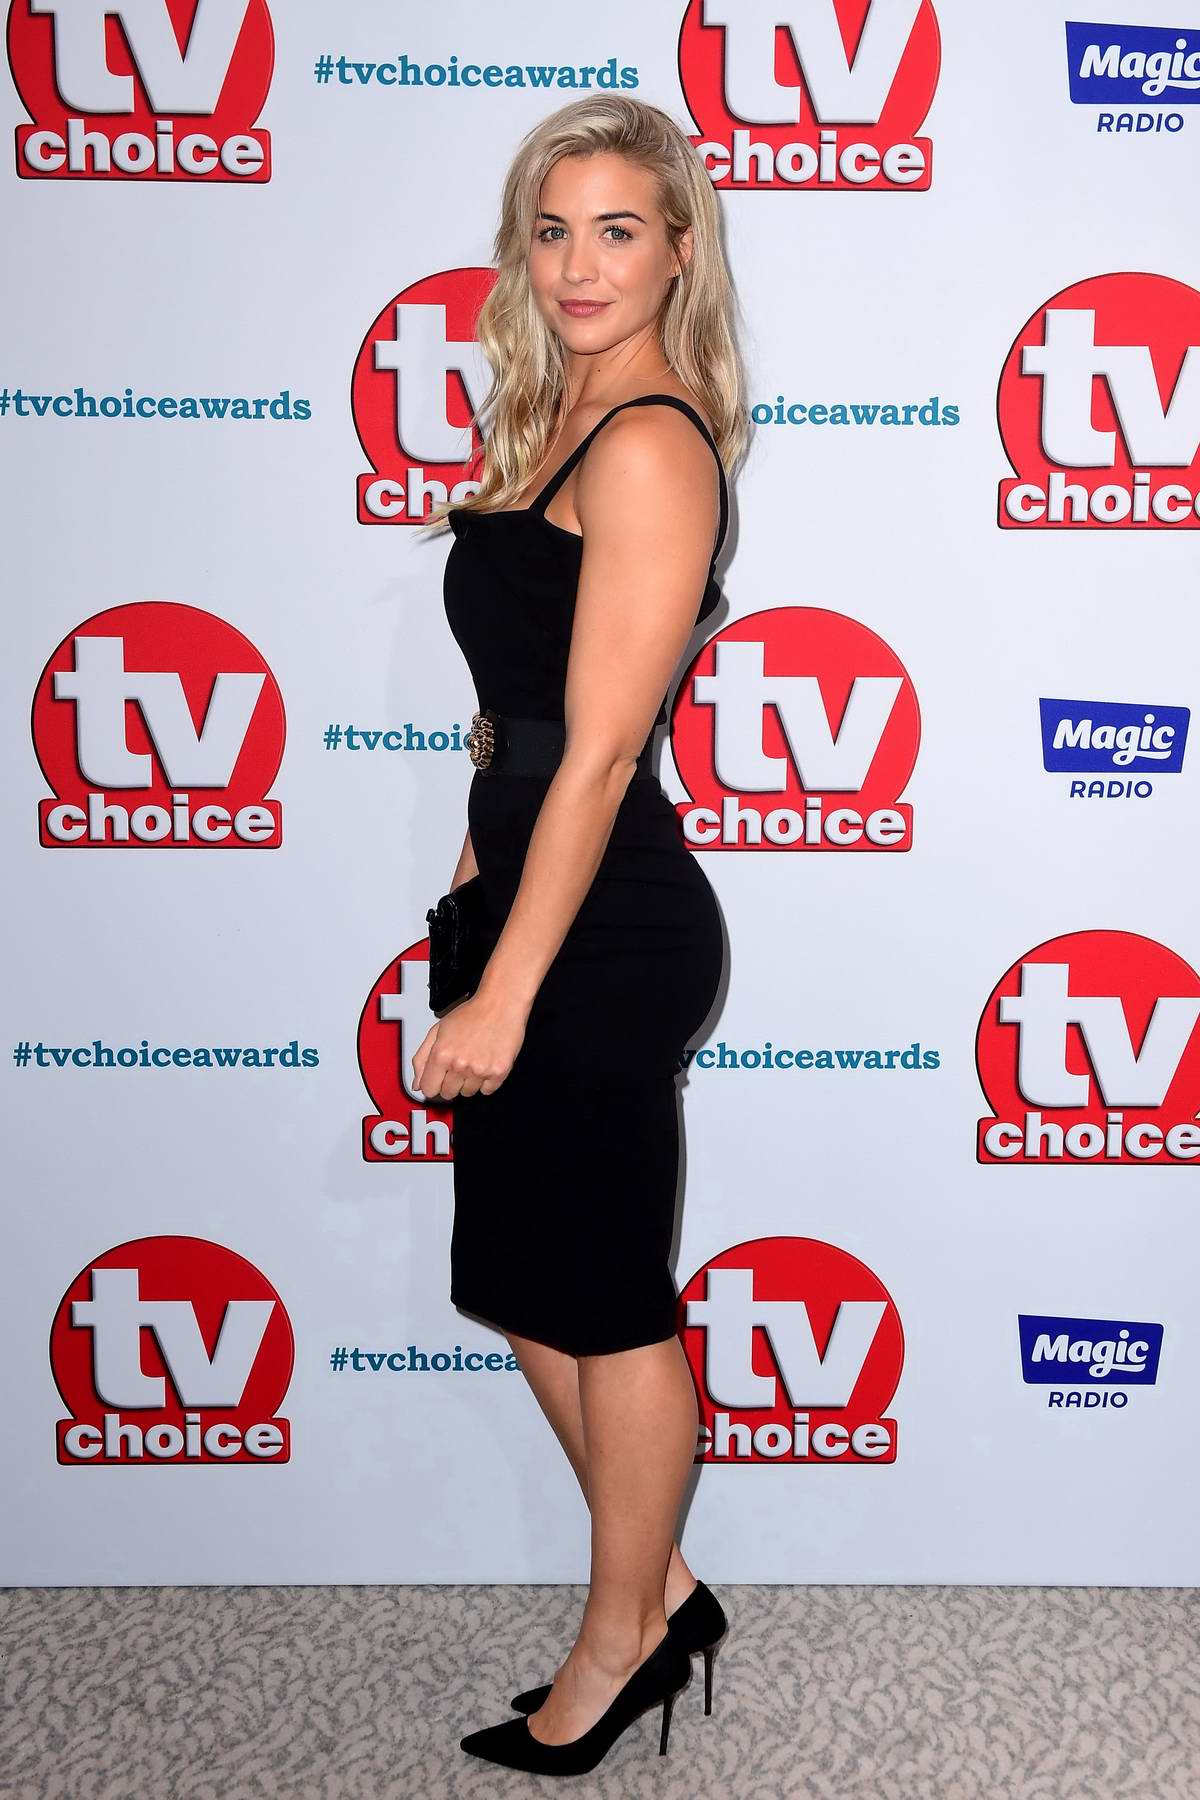 Gemma Atkinson attends The TV Choice Awards 2018 at Dorchester Hotel in London, UK